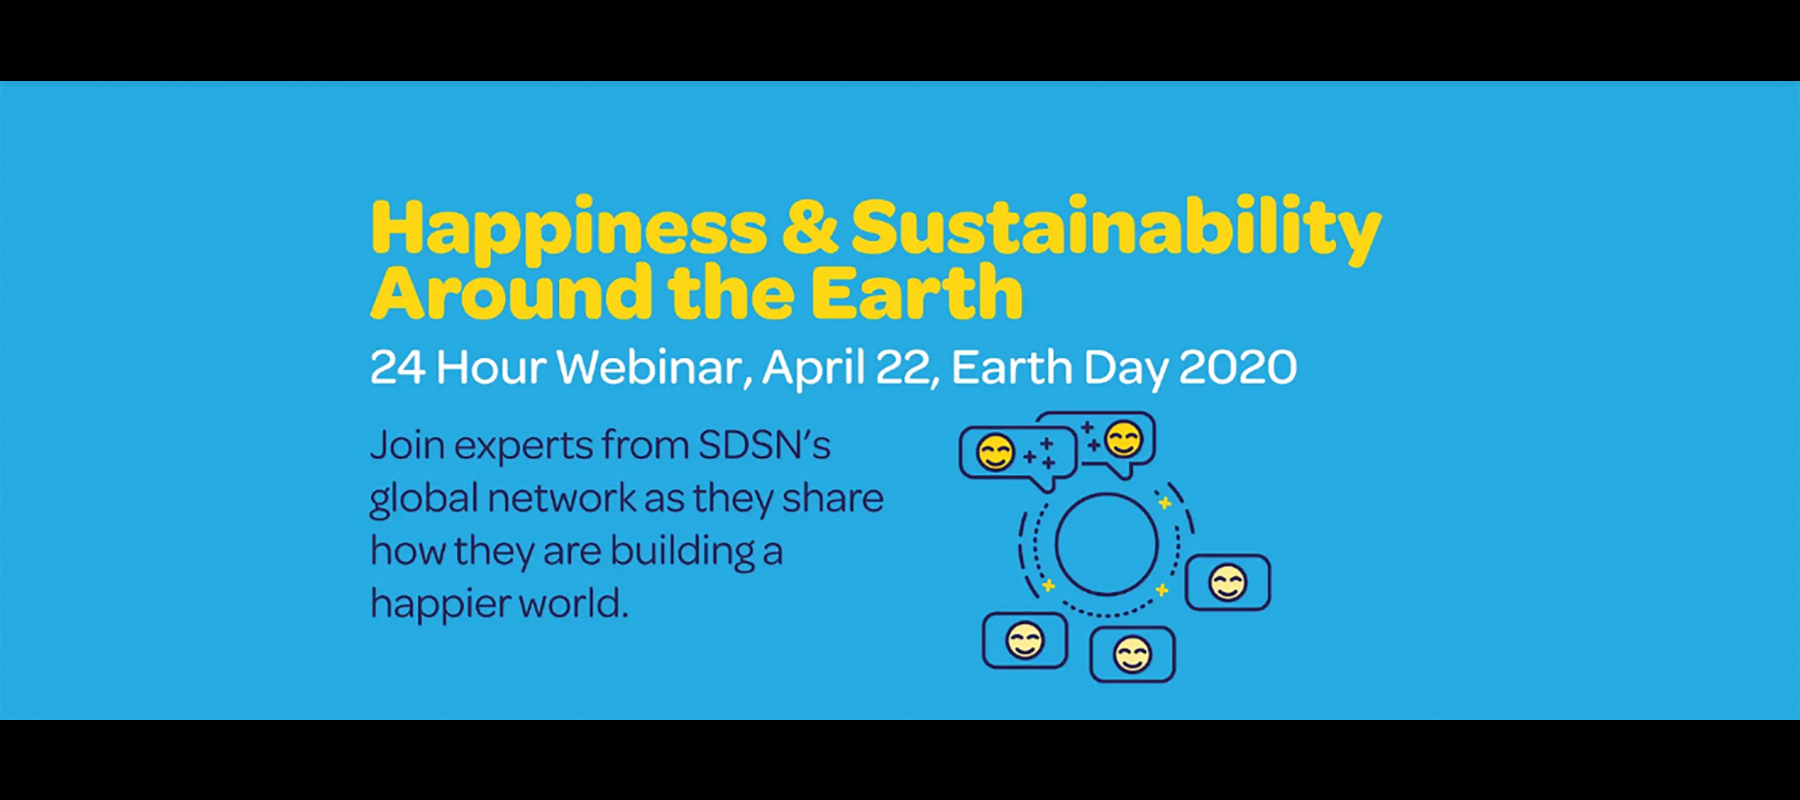 24 Hour Webinar: Happiness & Sustainability Around the Earth